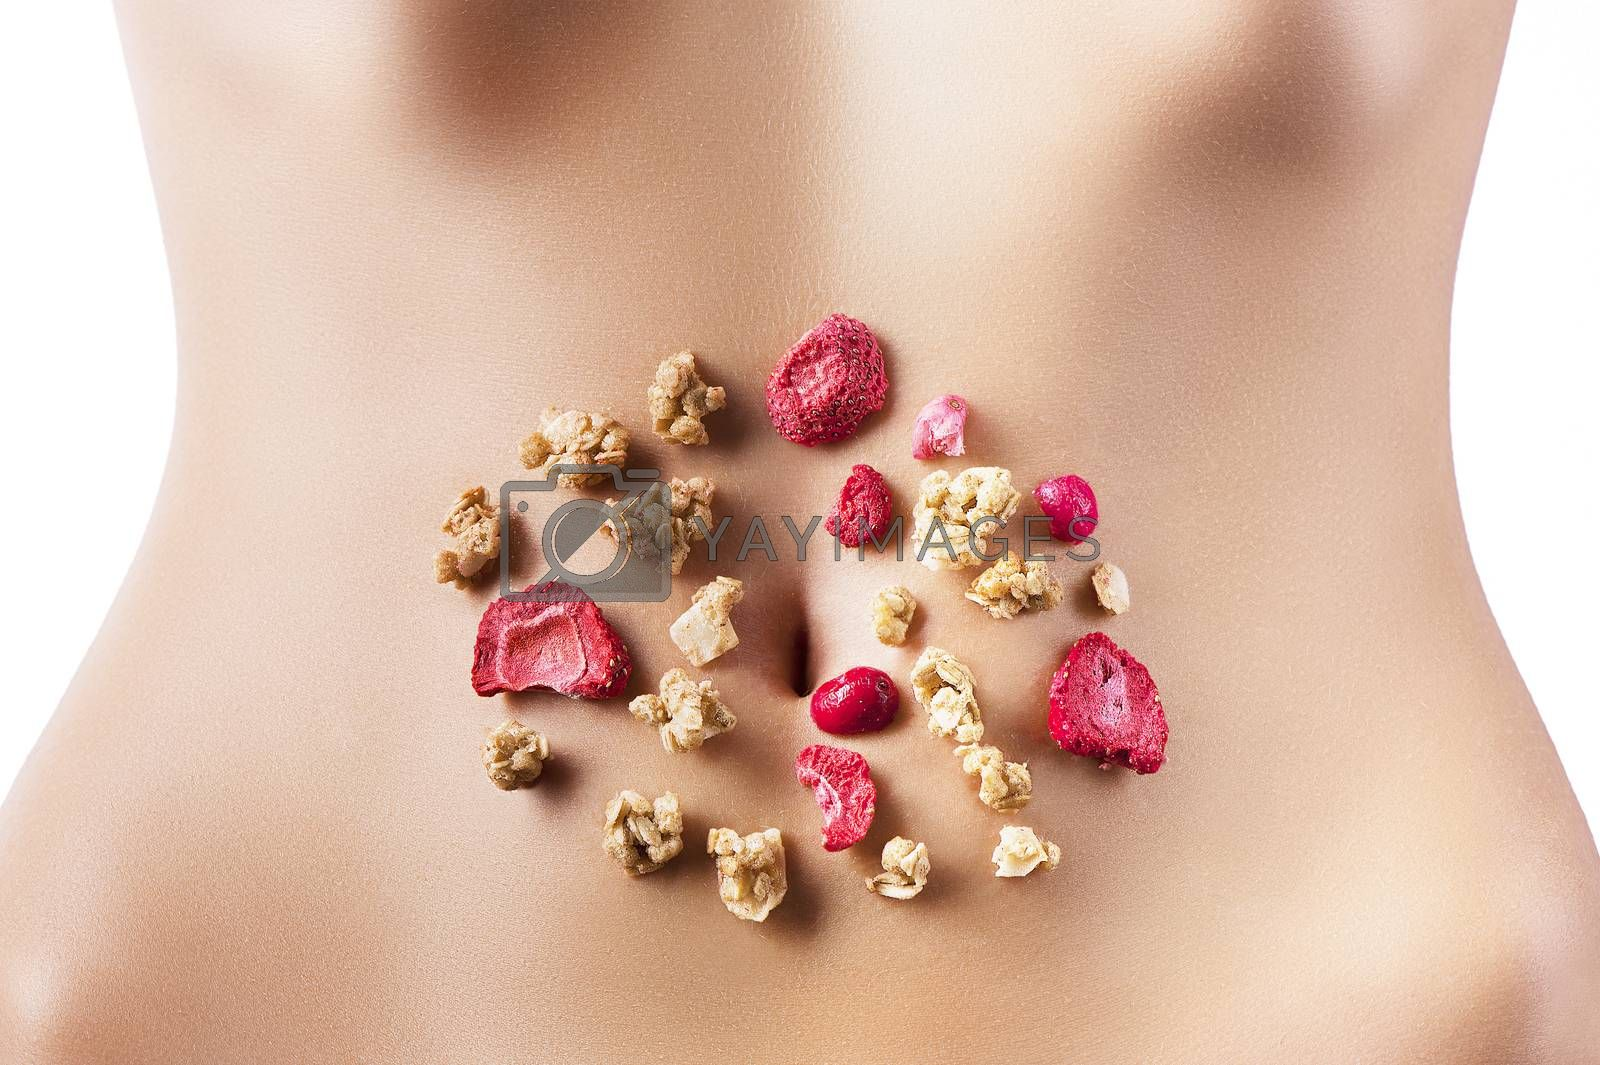 Royalty free image of composition of cereals and red dried fruits over belly by fotoCD